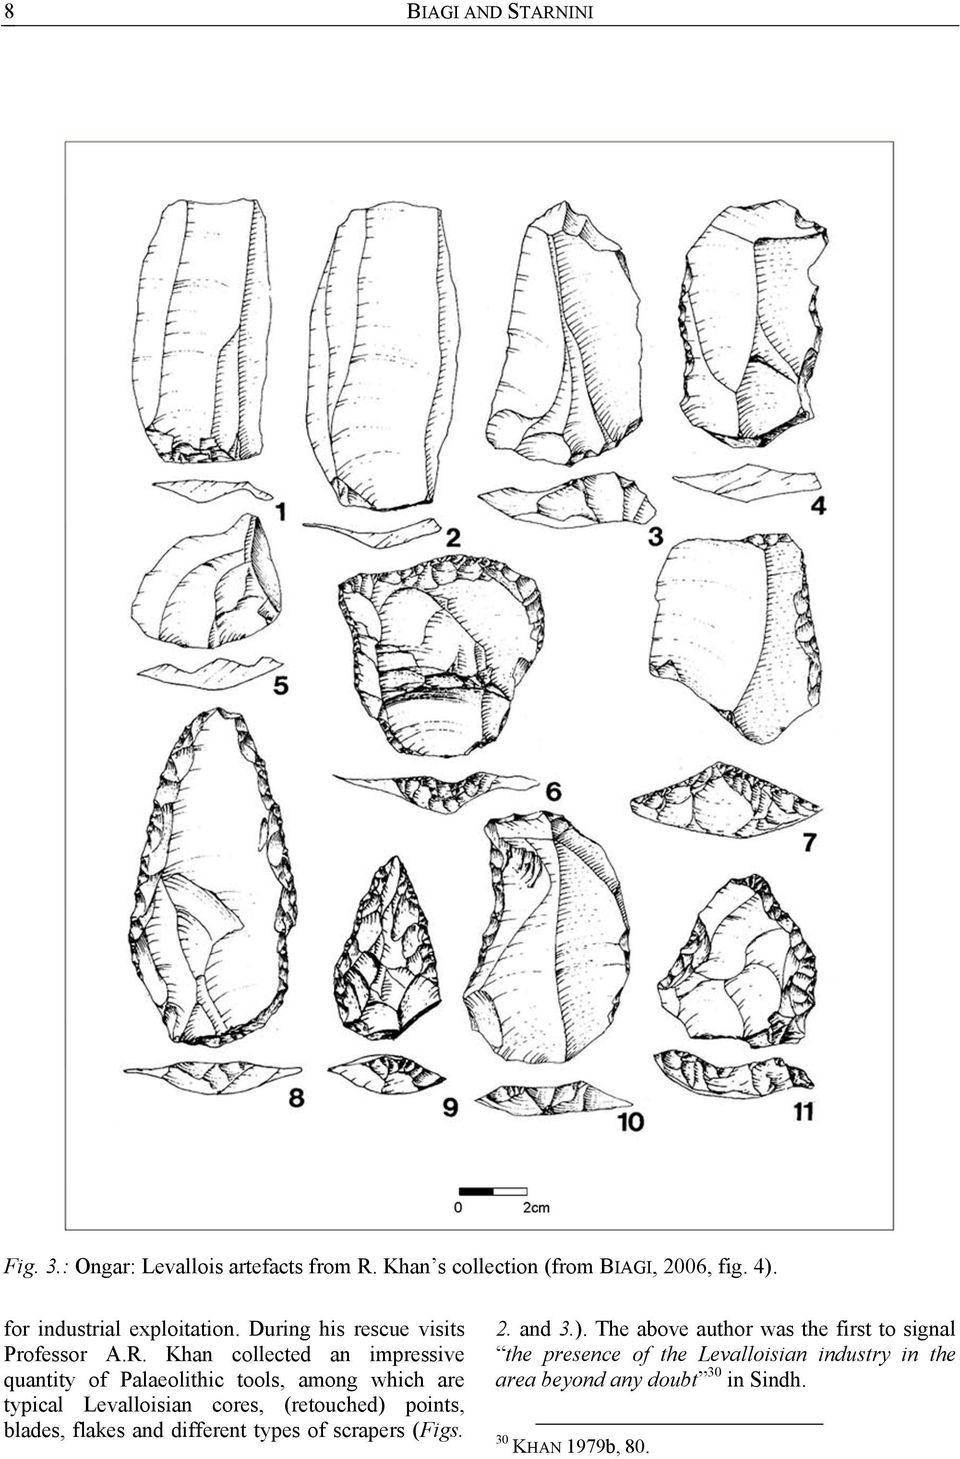 Khan collected an impressive quantity of Palaeolithic tools, among which are typical Levalloisian cores, (retouched) points,